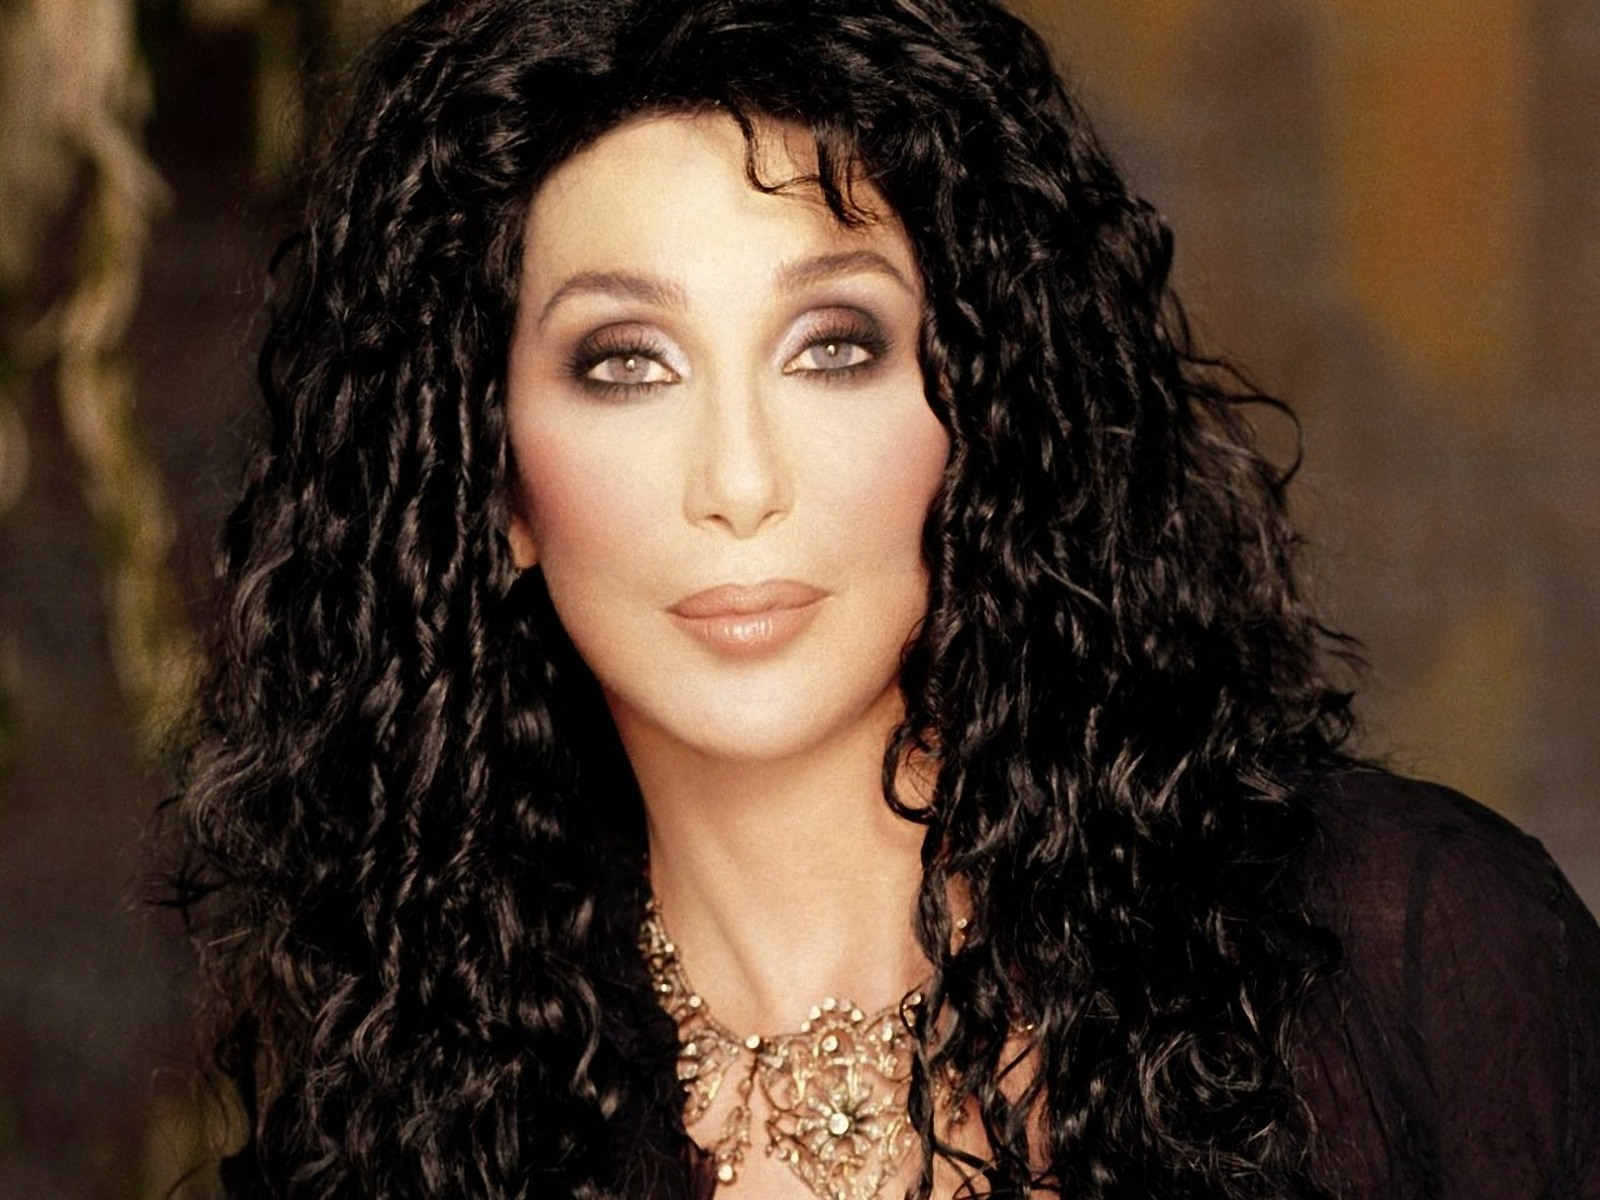 Cher (Sarkissian), singer/actress (U.S.)